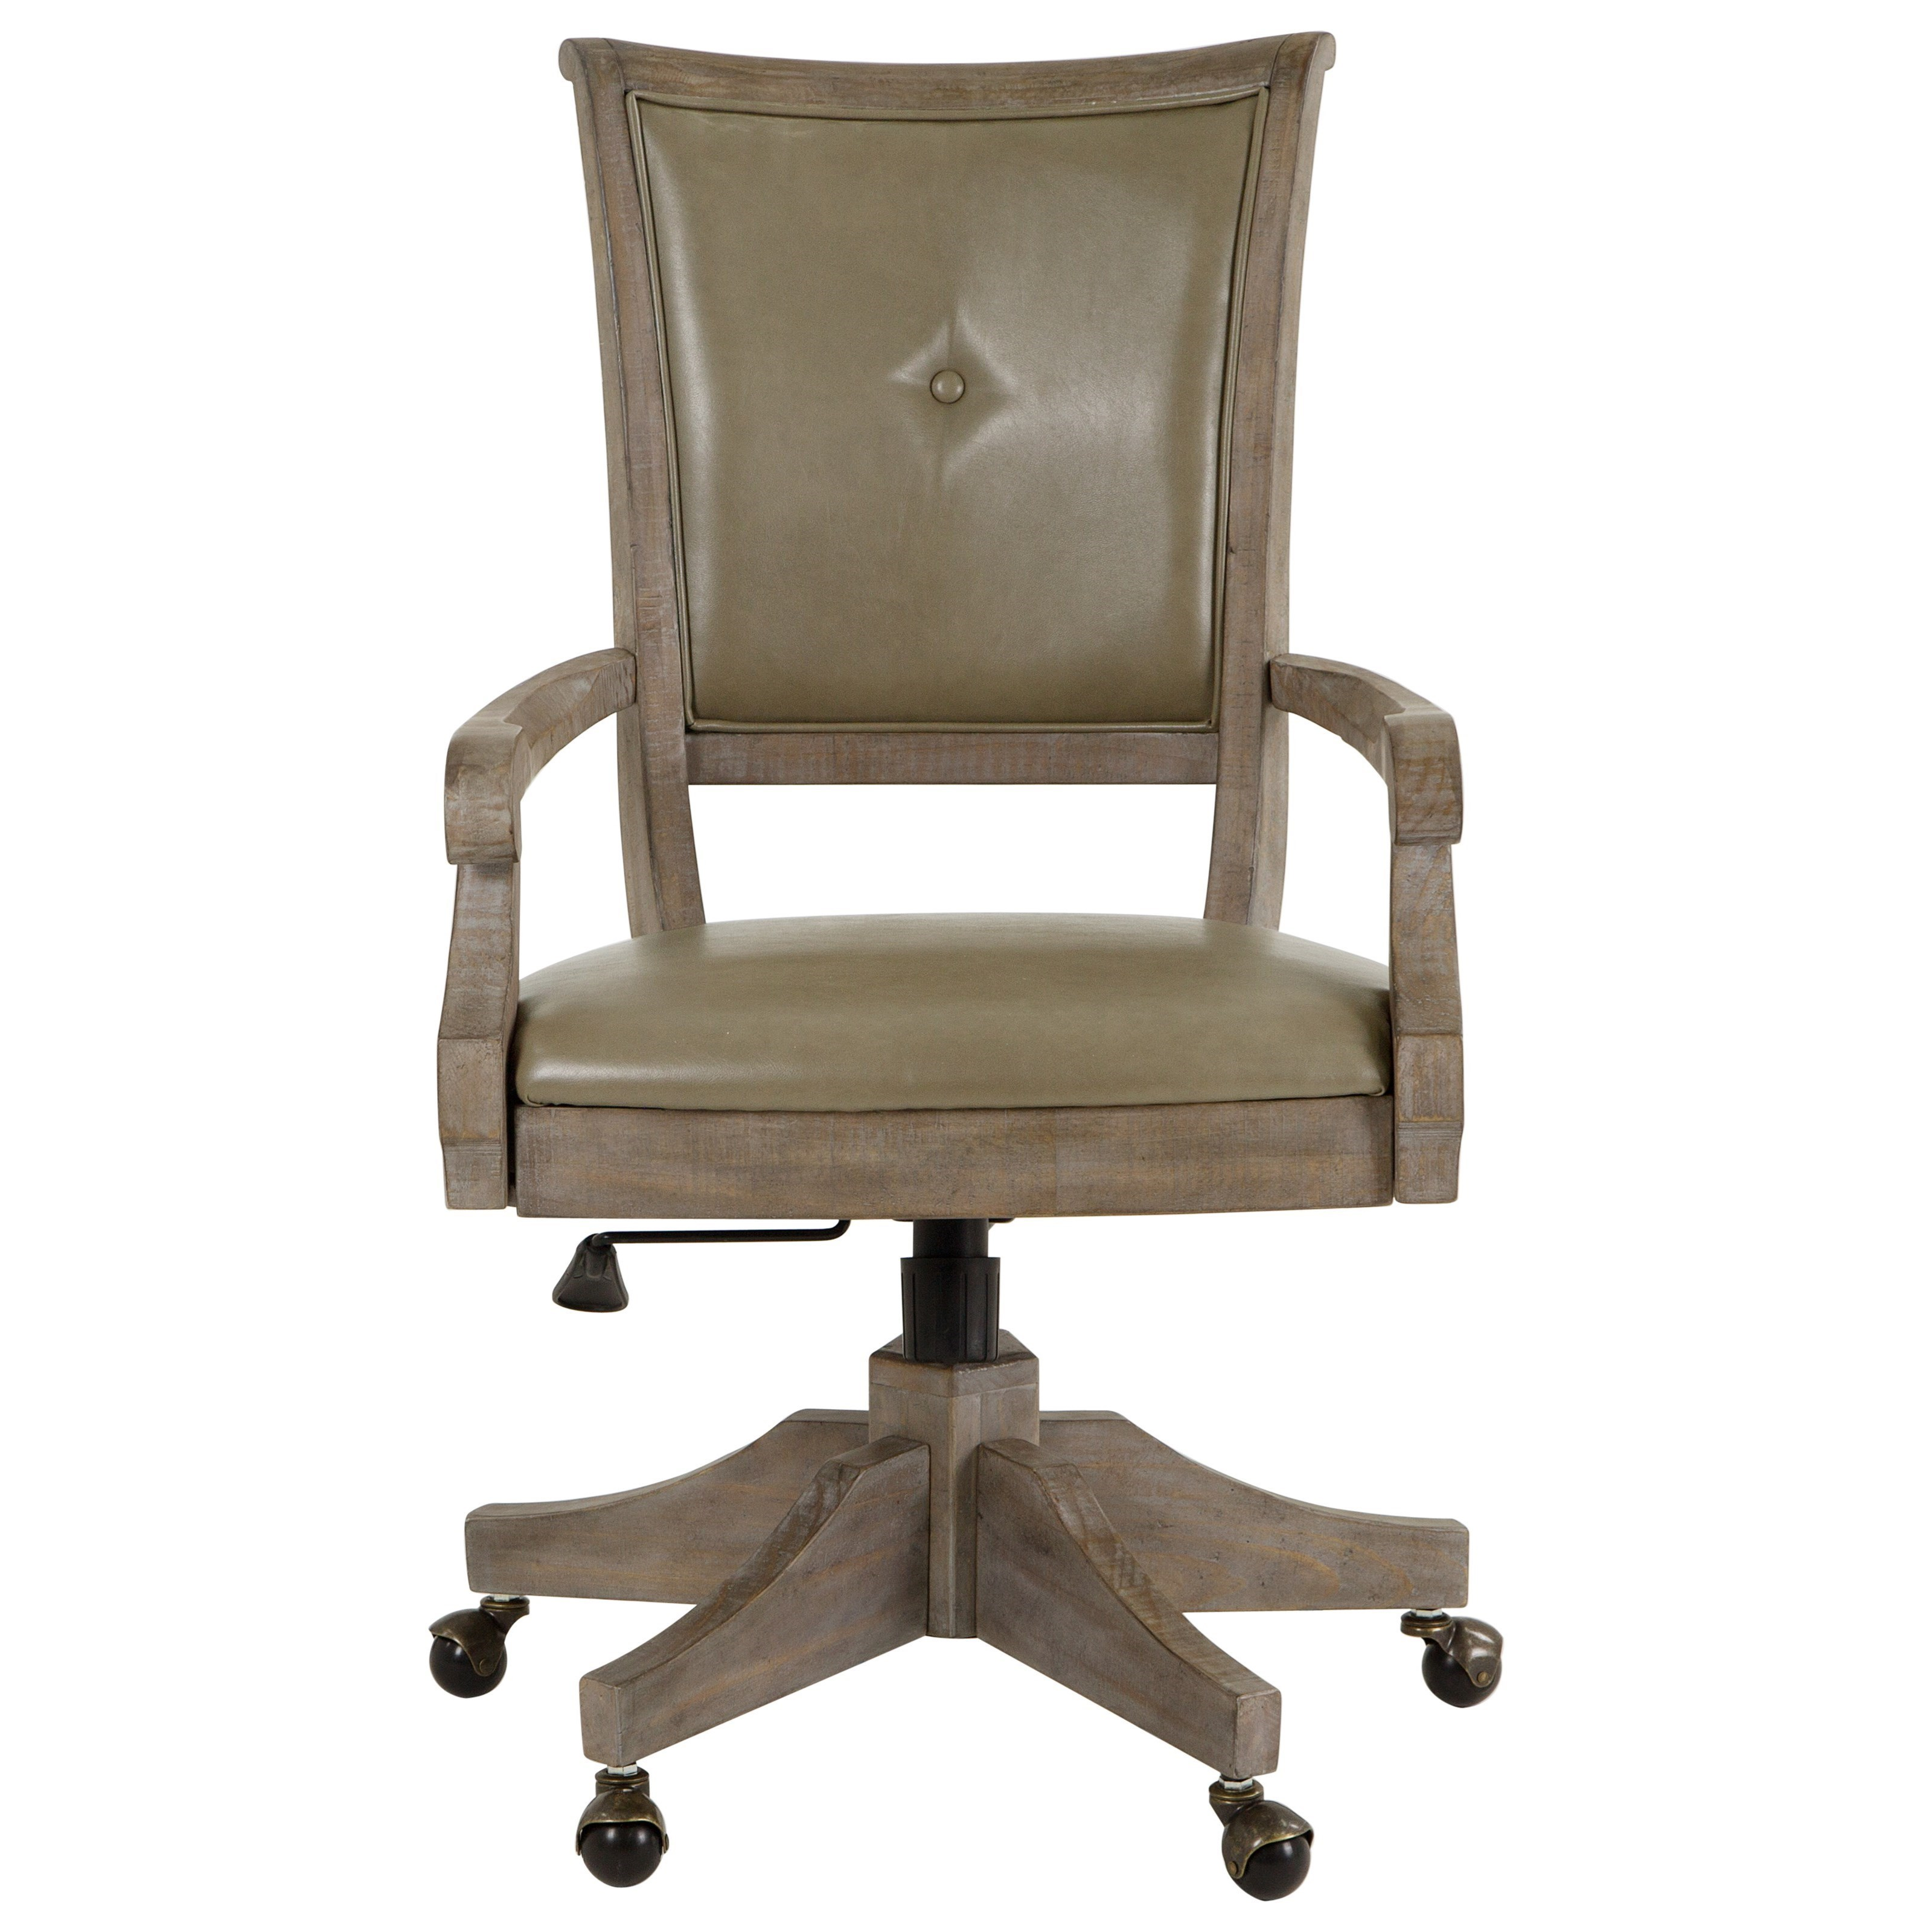 Upholstered Swivel Chairs Lancaster Rustic Upholstered Swivel Chair By Magnussen Home At Reeds Furniture